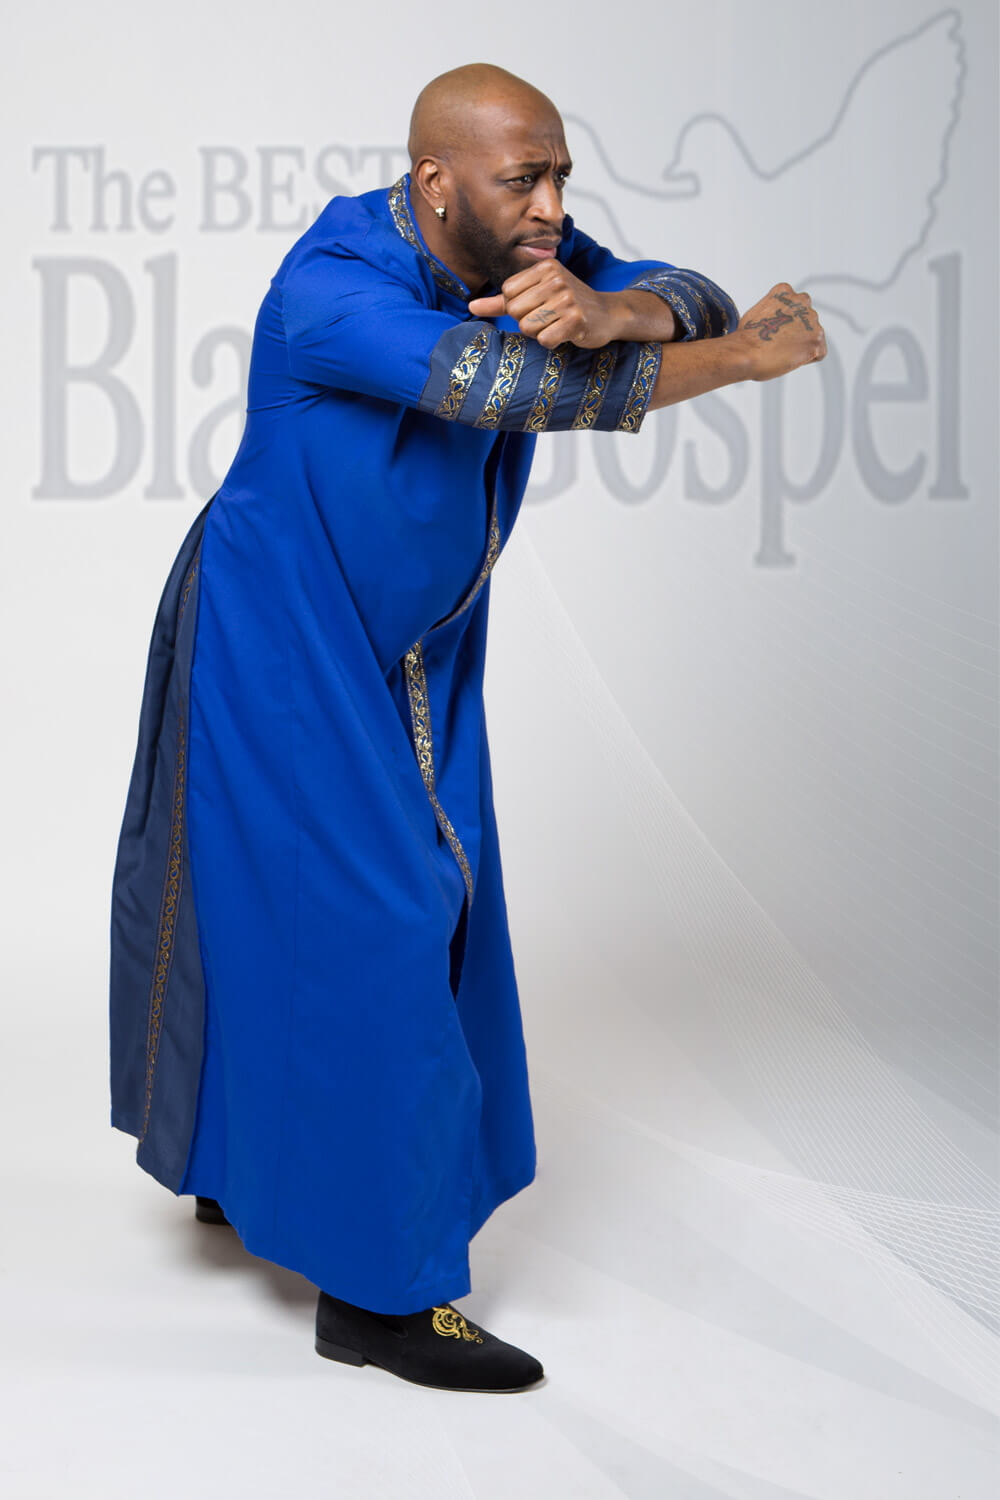 Black-Gospel-Photoron.jpg